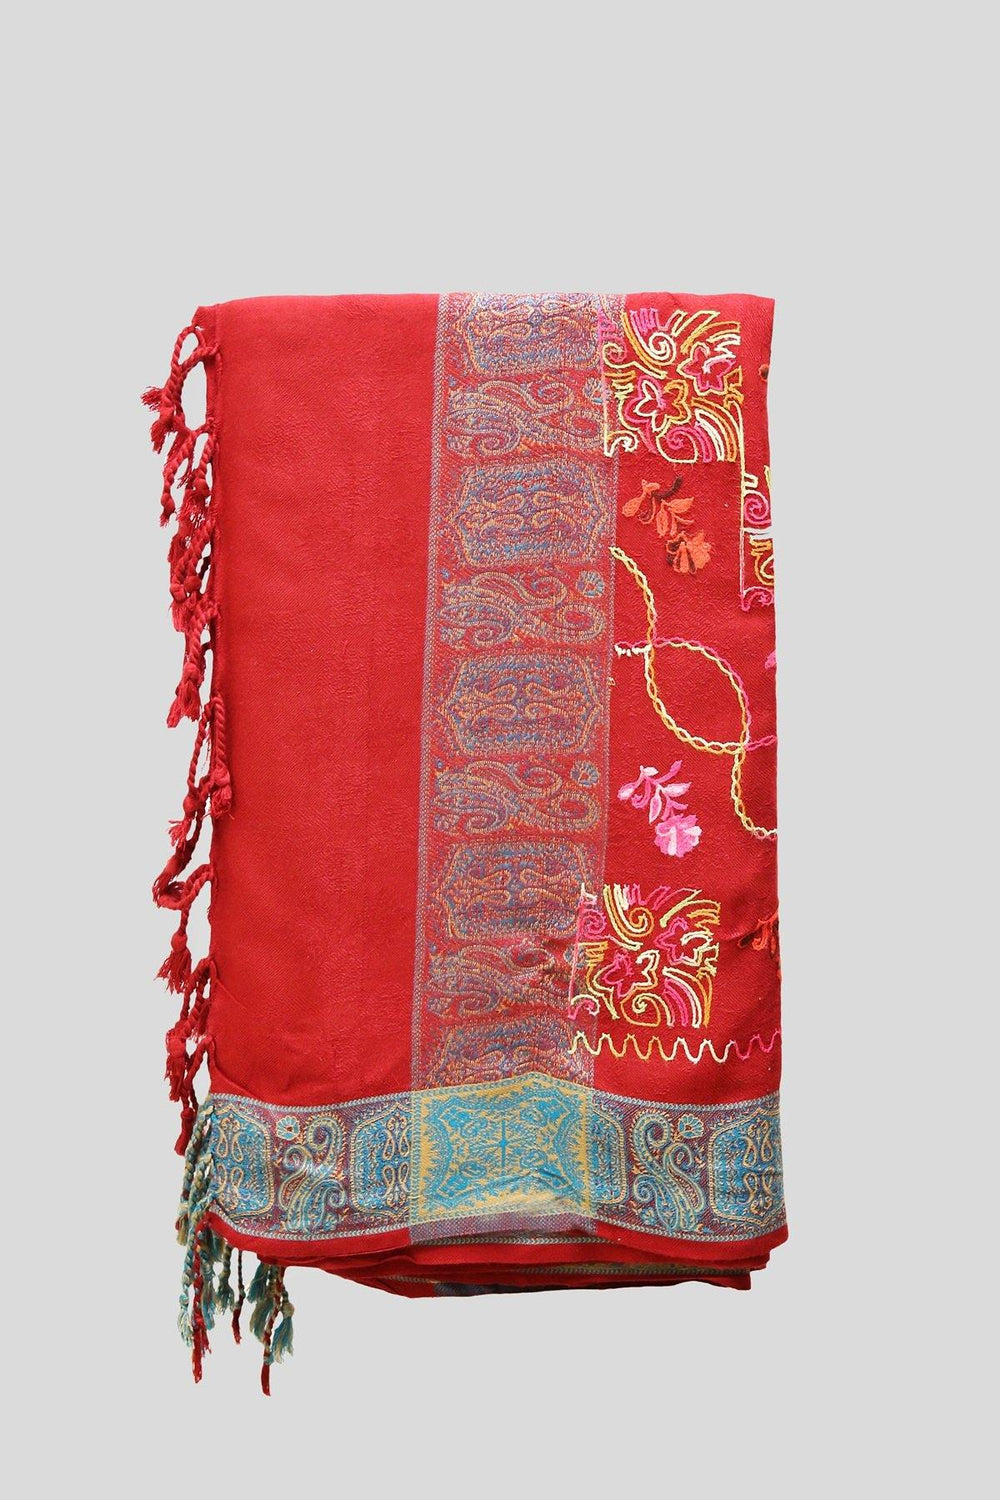 Colorful Floral Embroidered Woolen Shawl - Brandsea UK